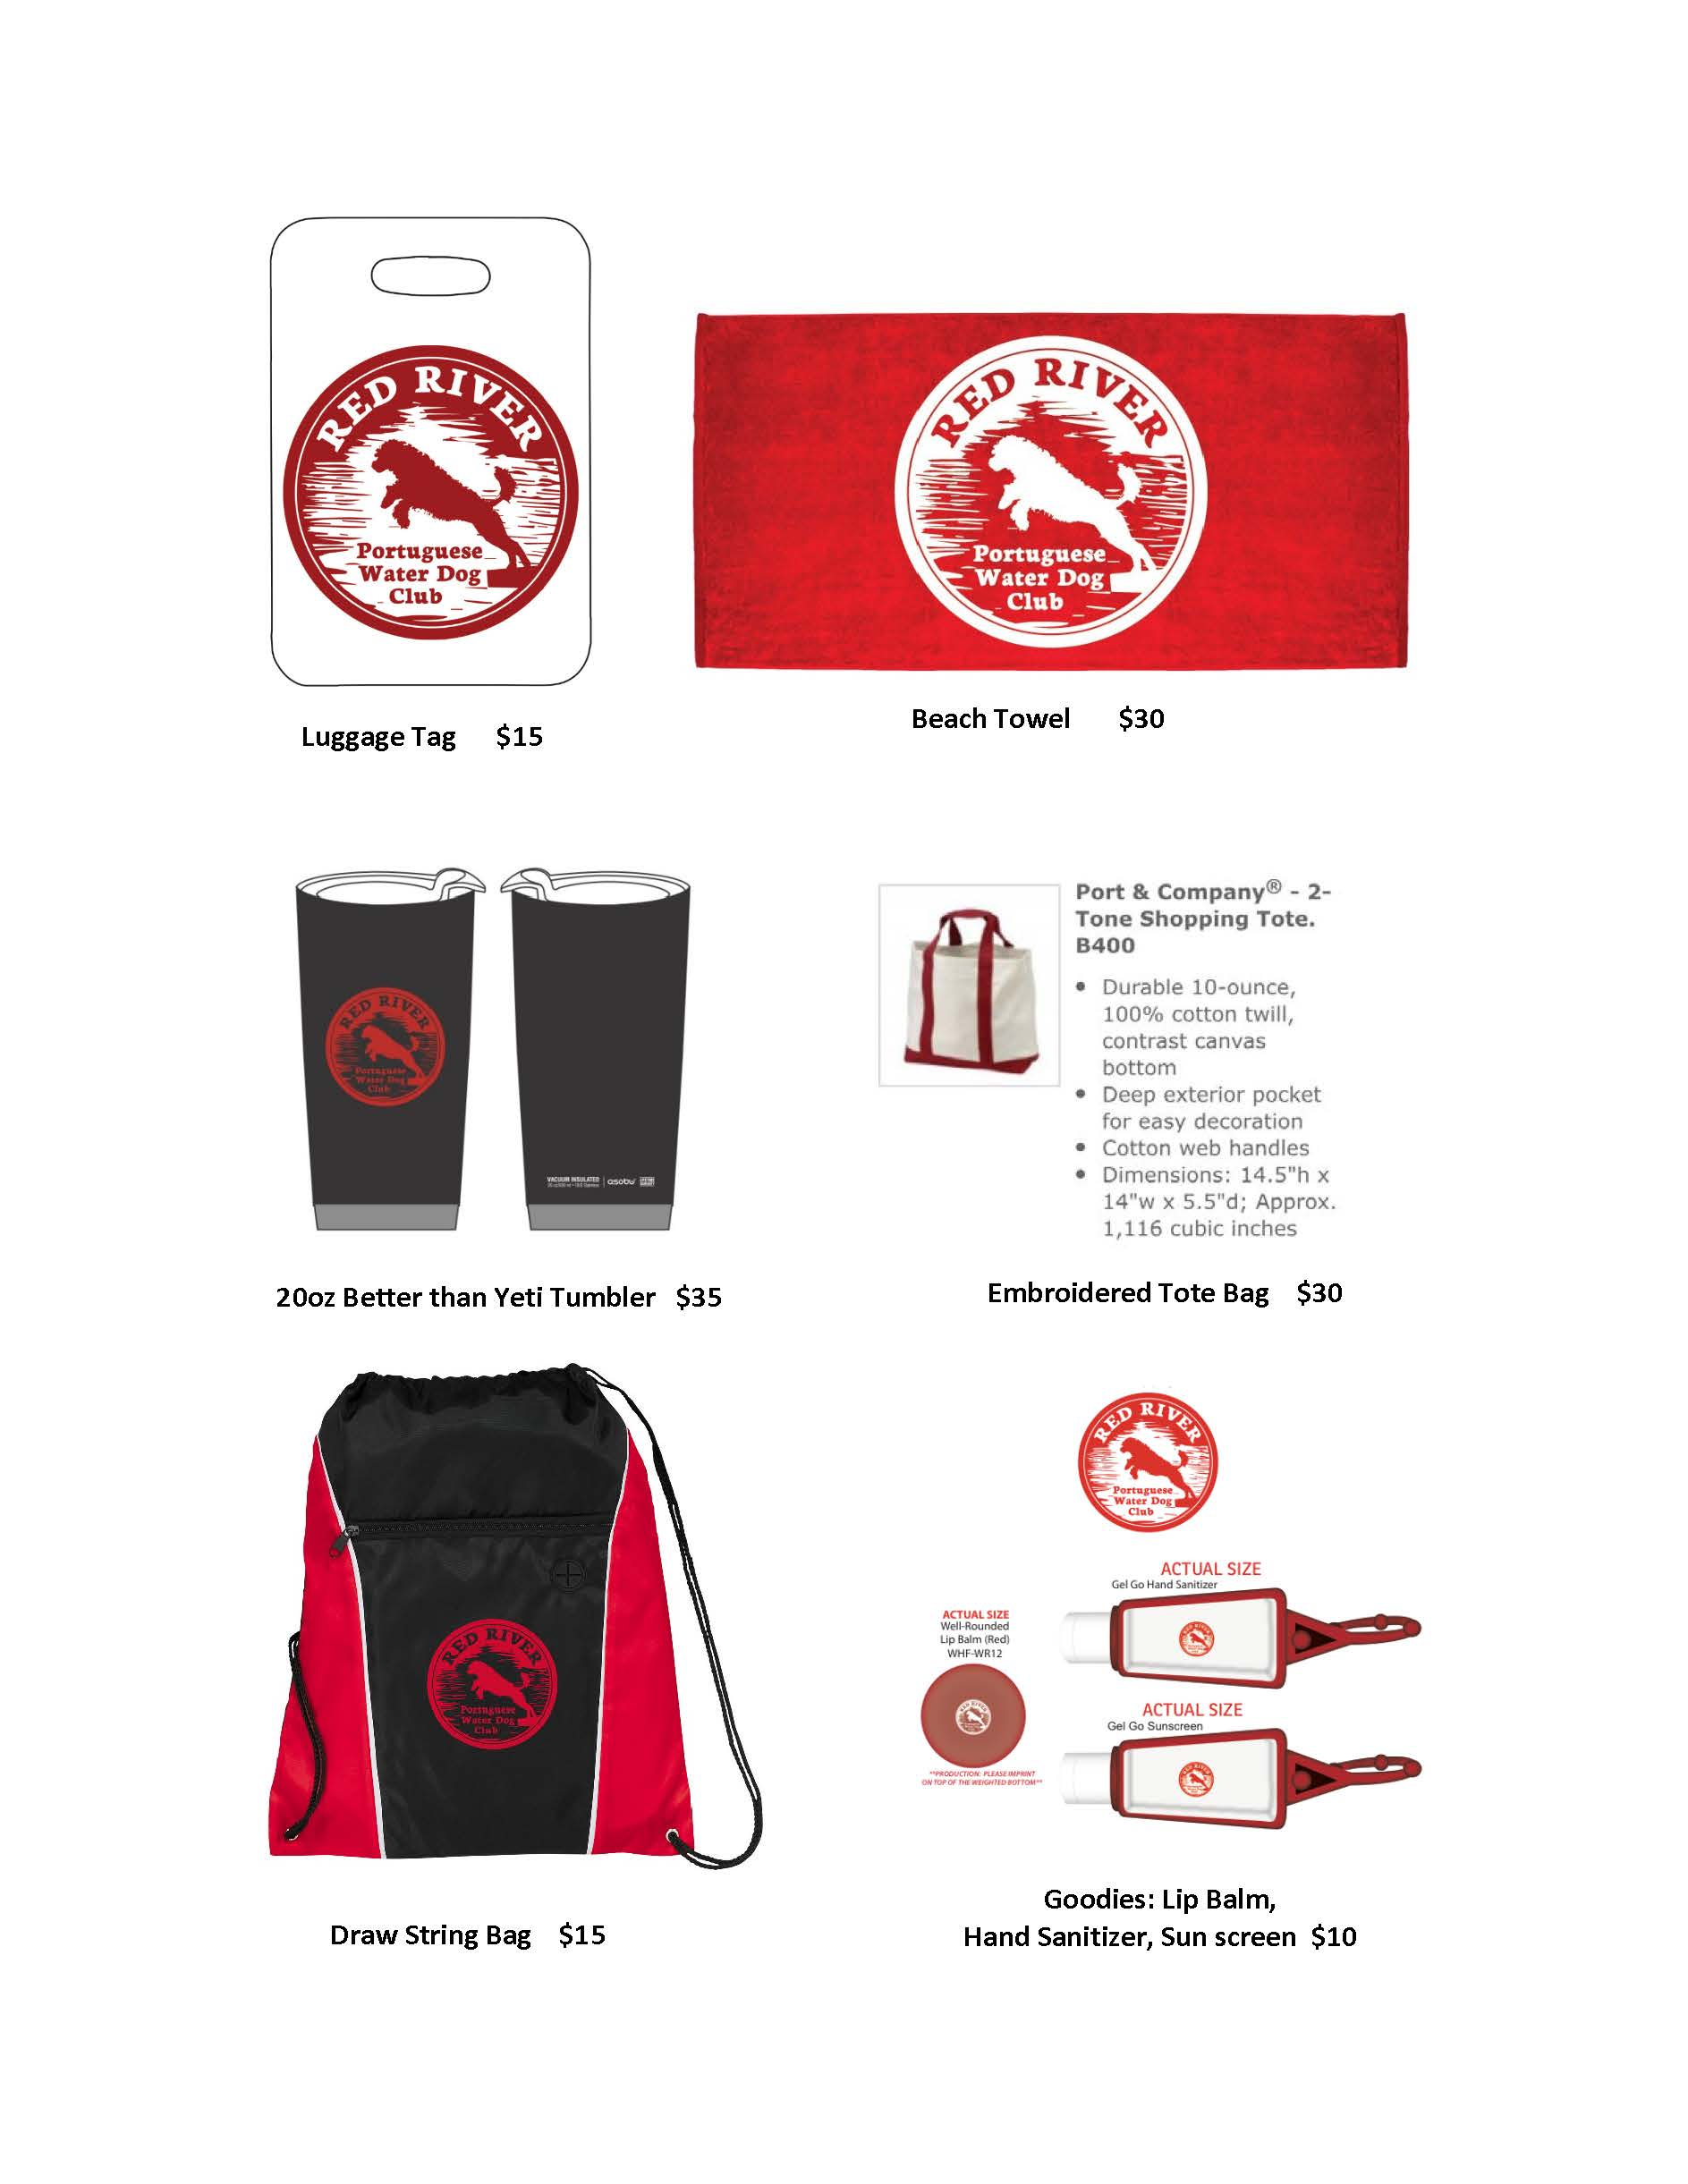 Red River PWDC Merchandise Details_Page_2.jpg